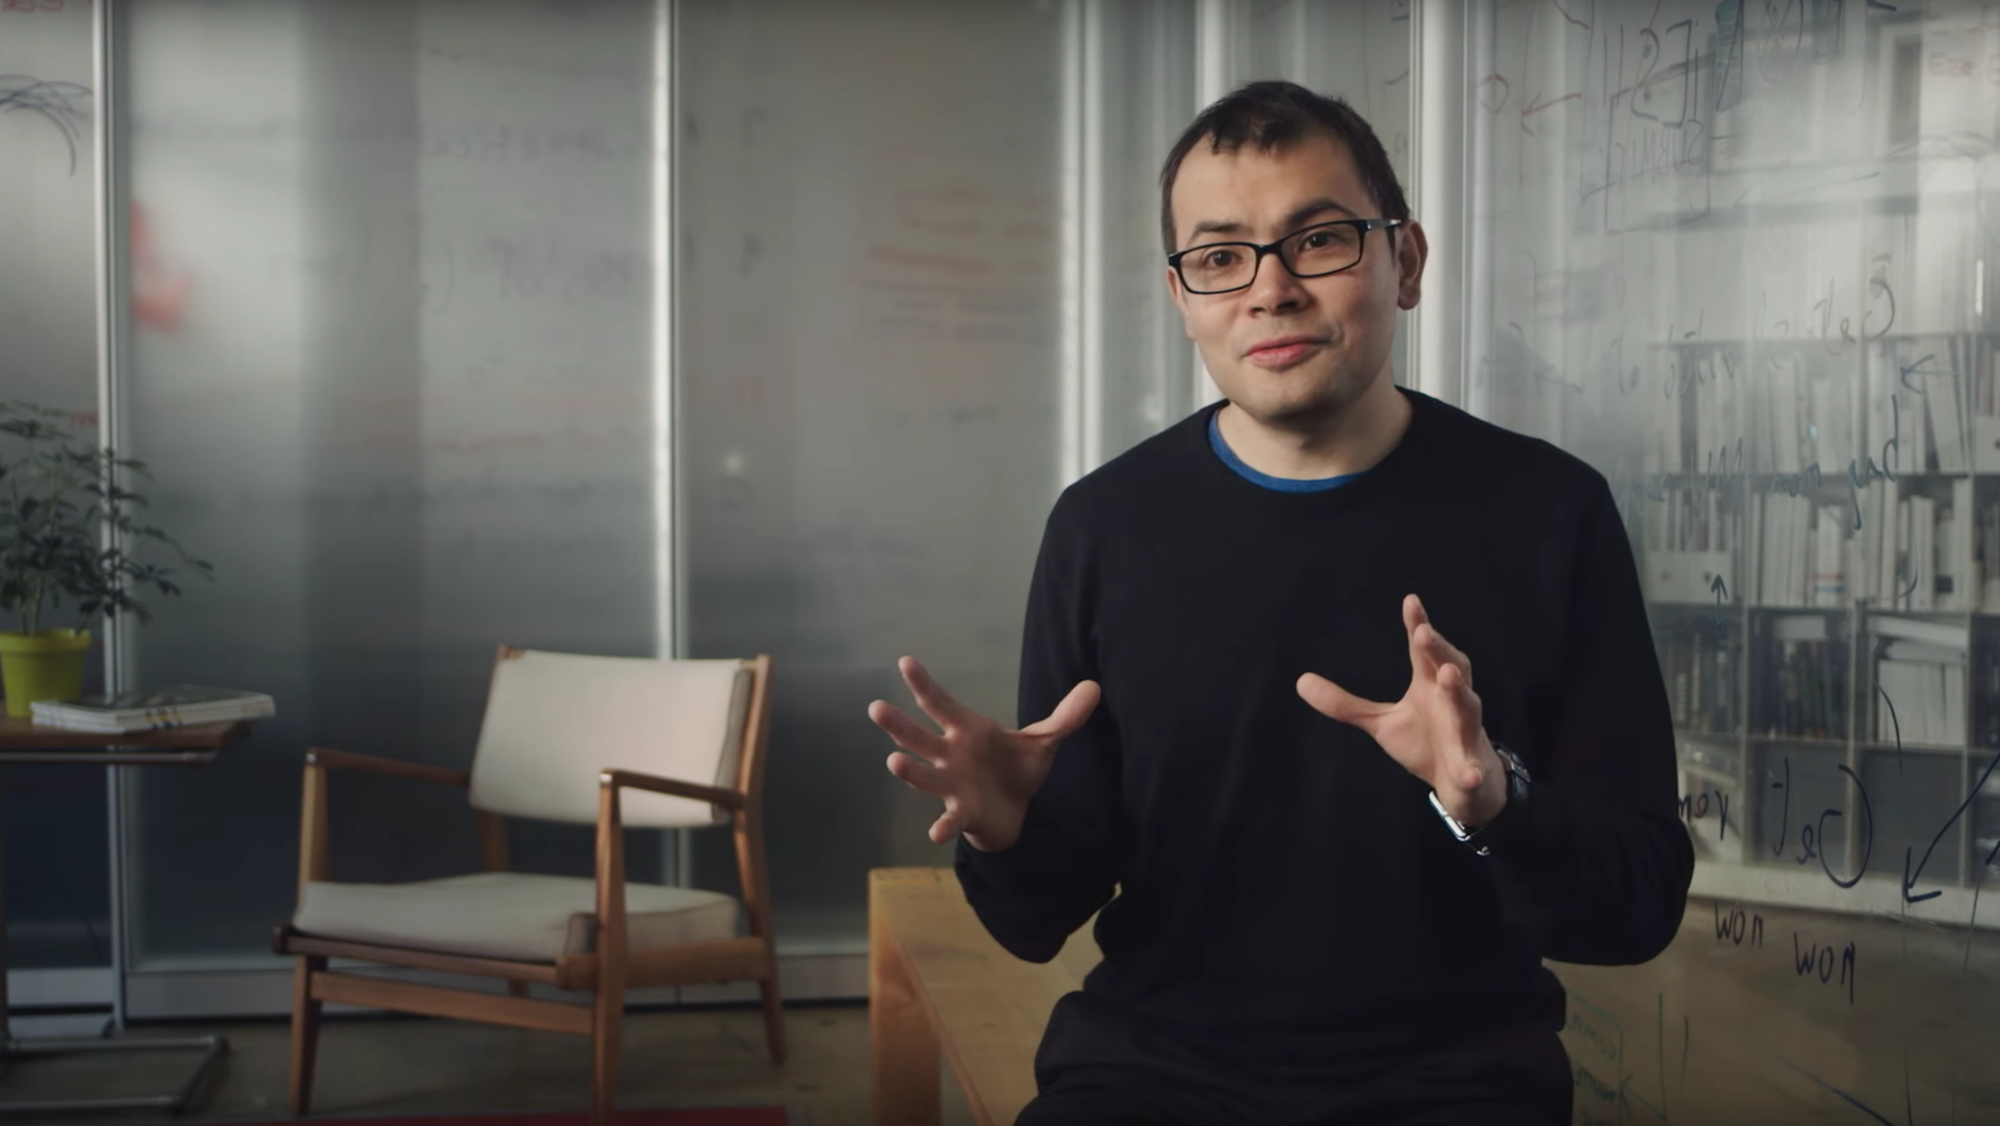 Google DeepMind video